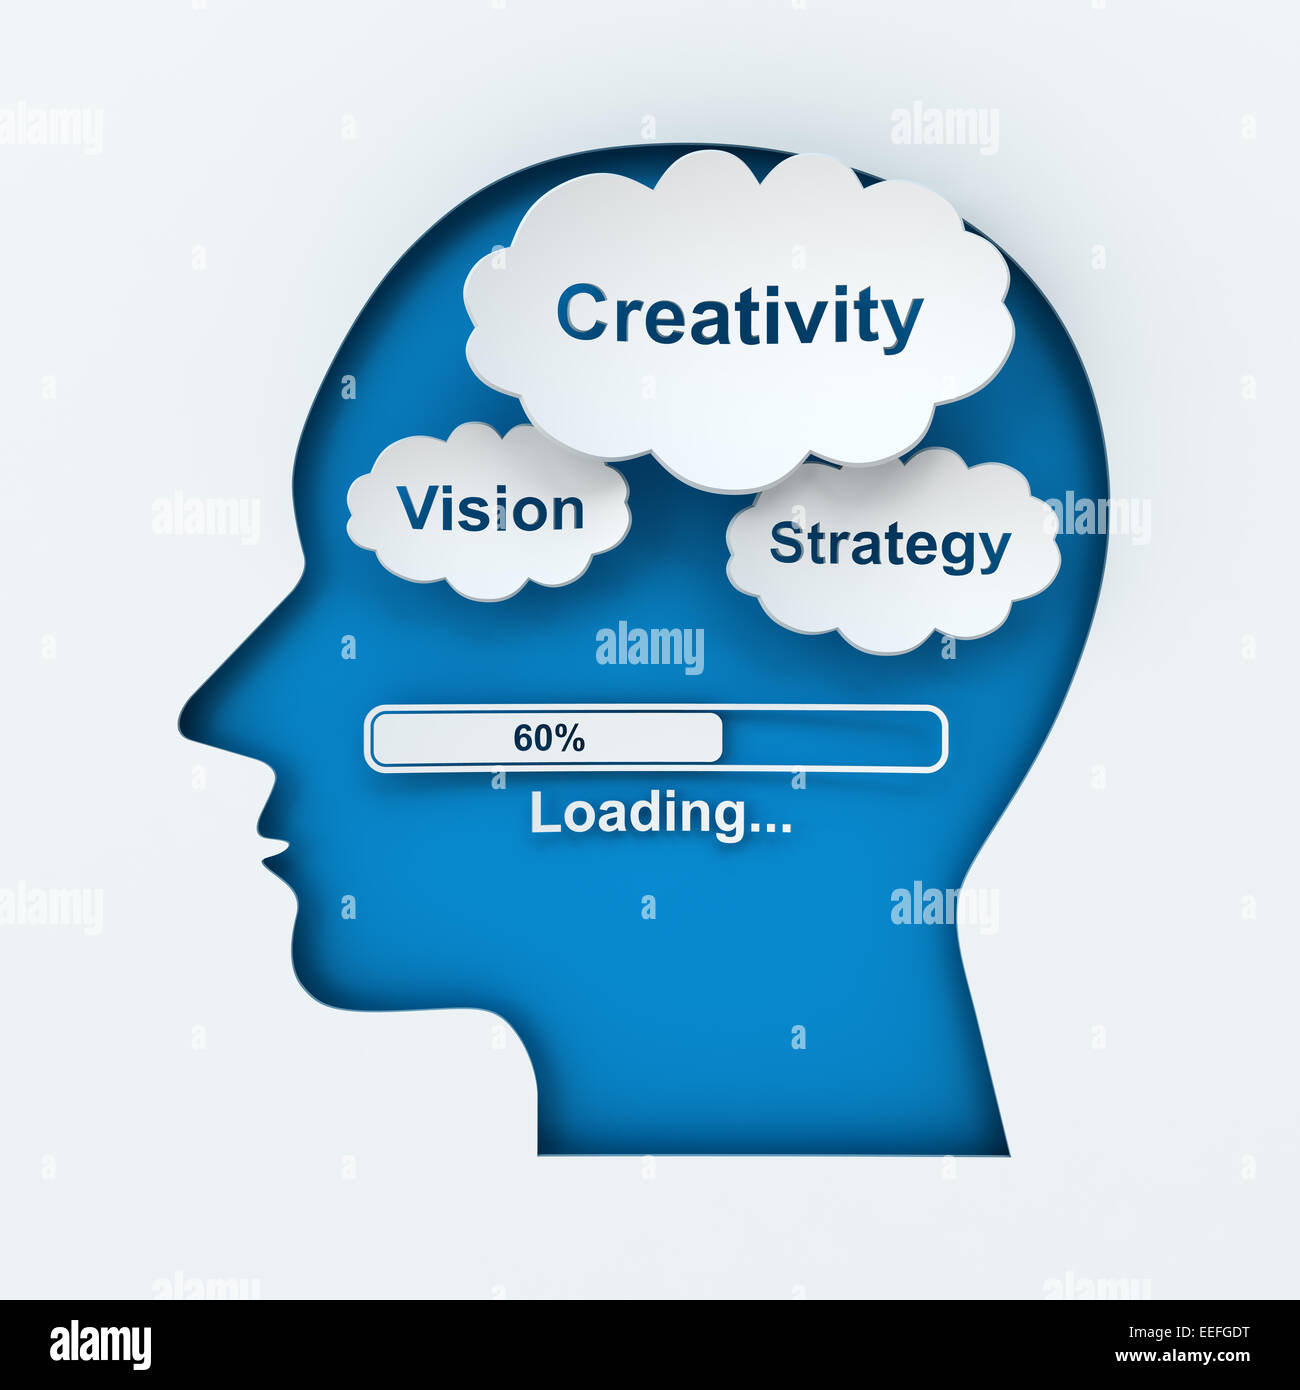 Loading creativity, vision and strategy - Stock Image